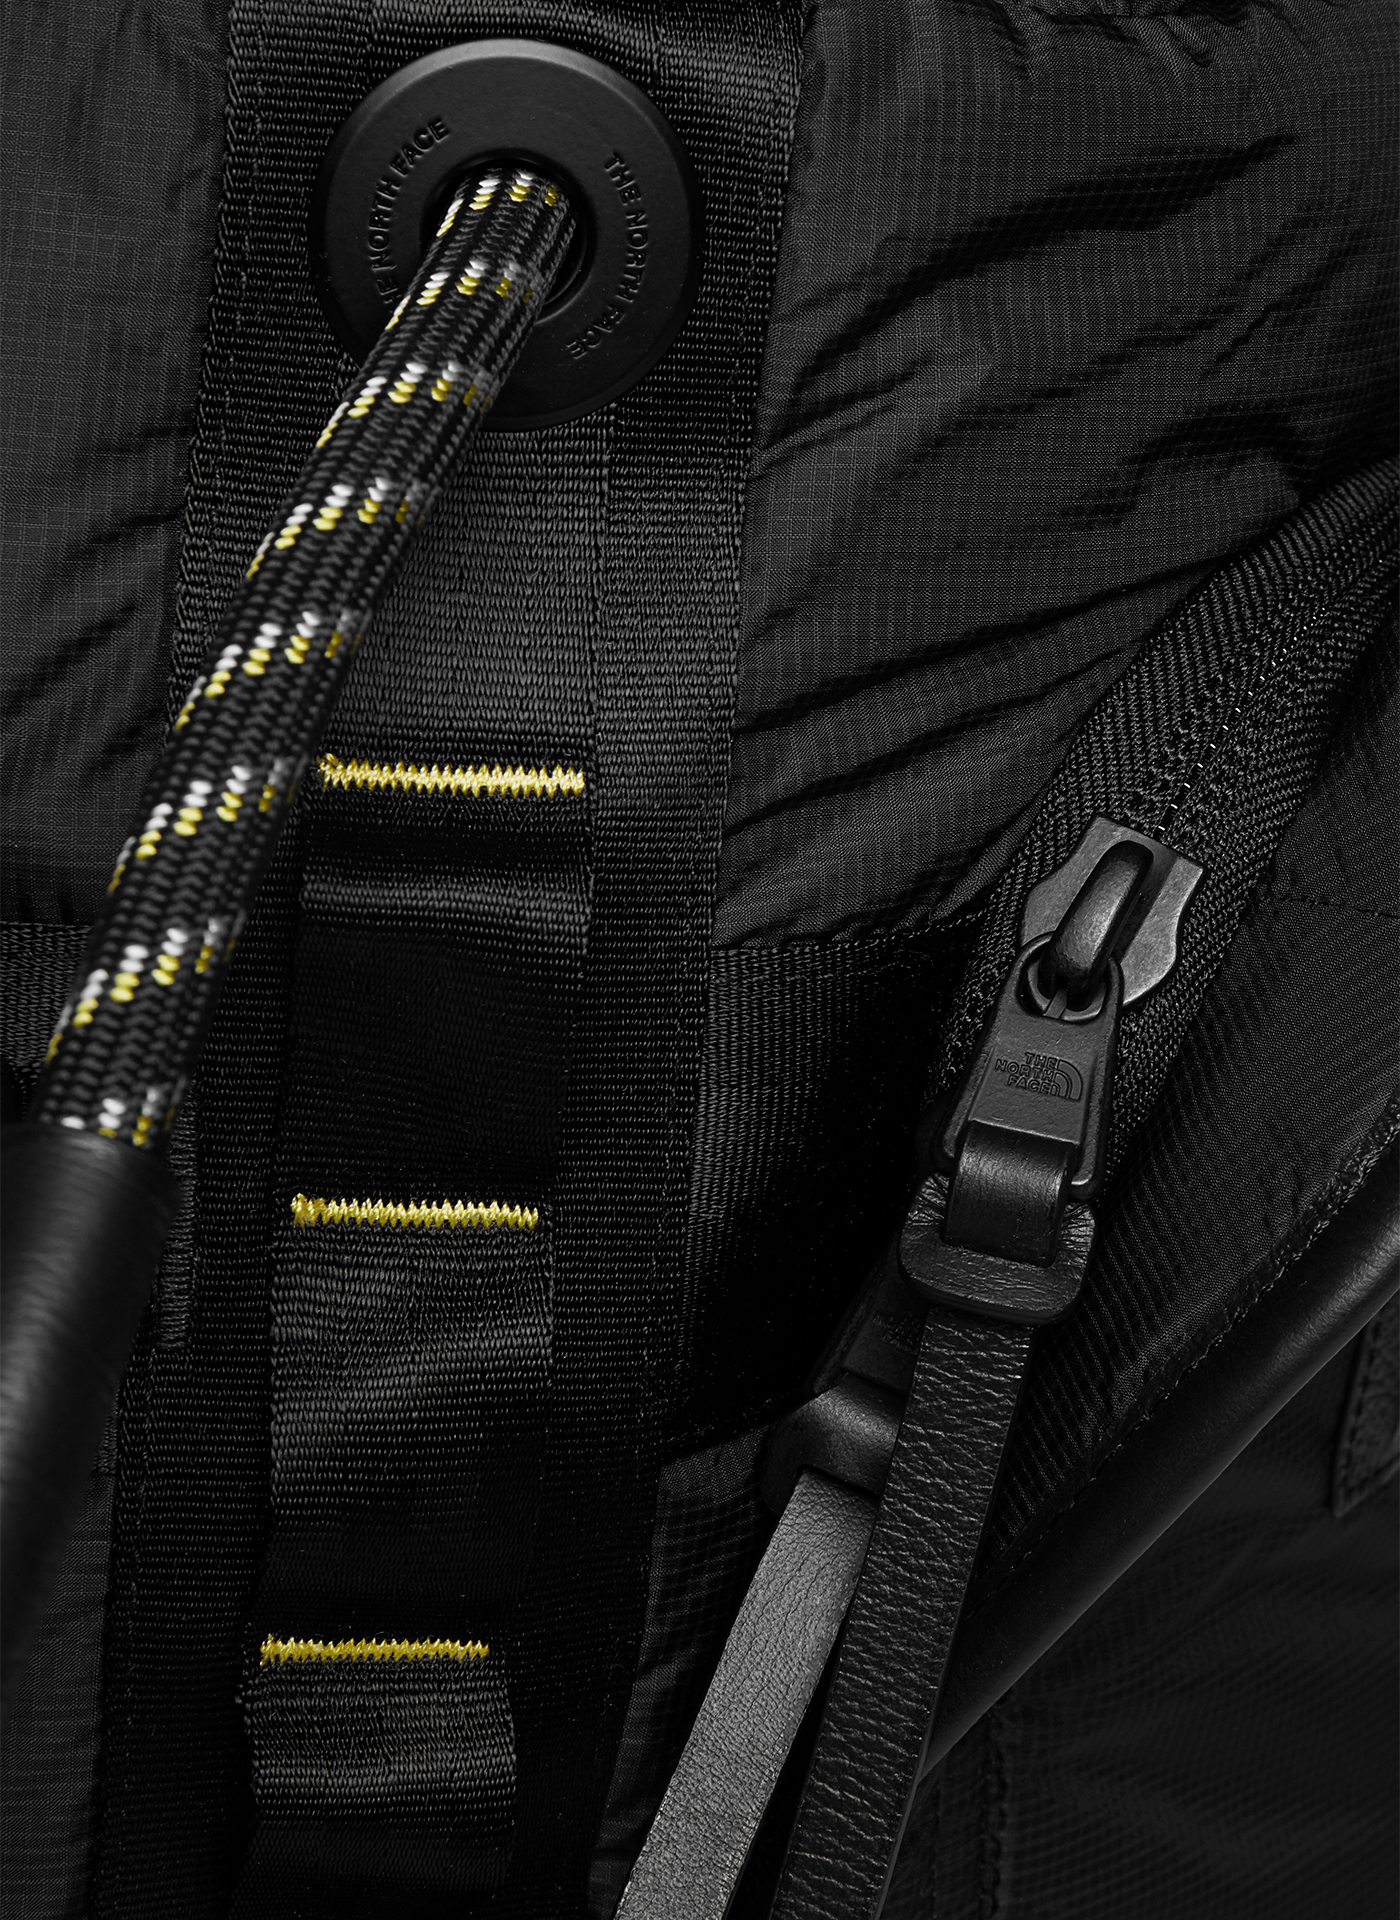 close up shot of a zipper from the black backpack